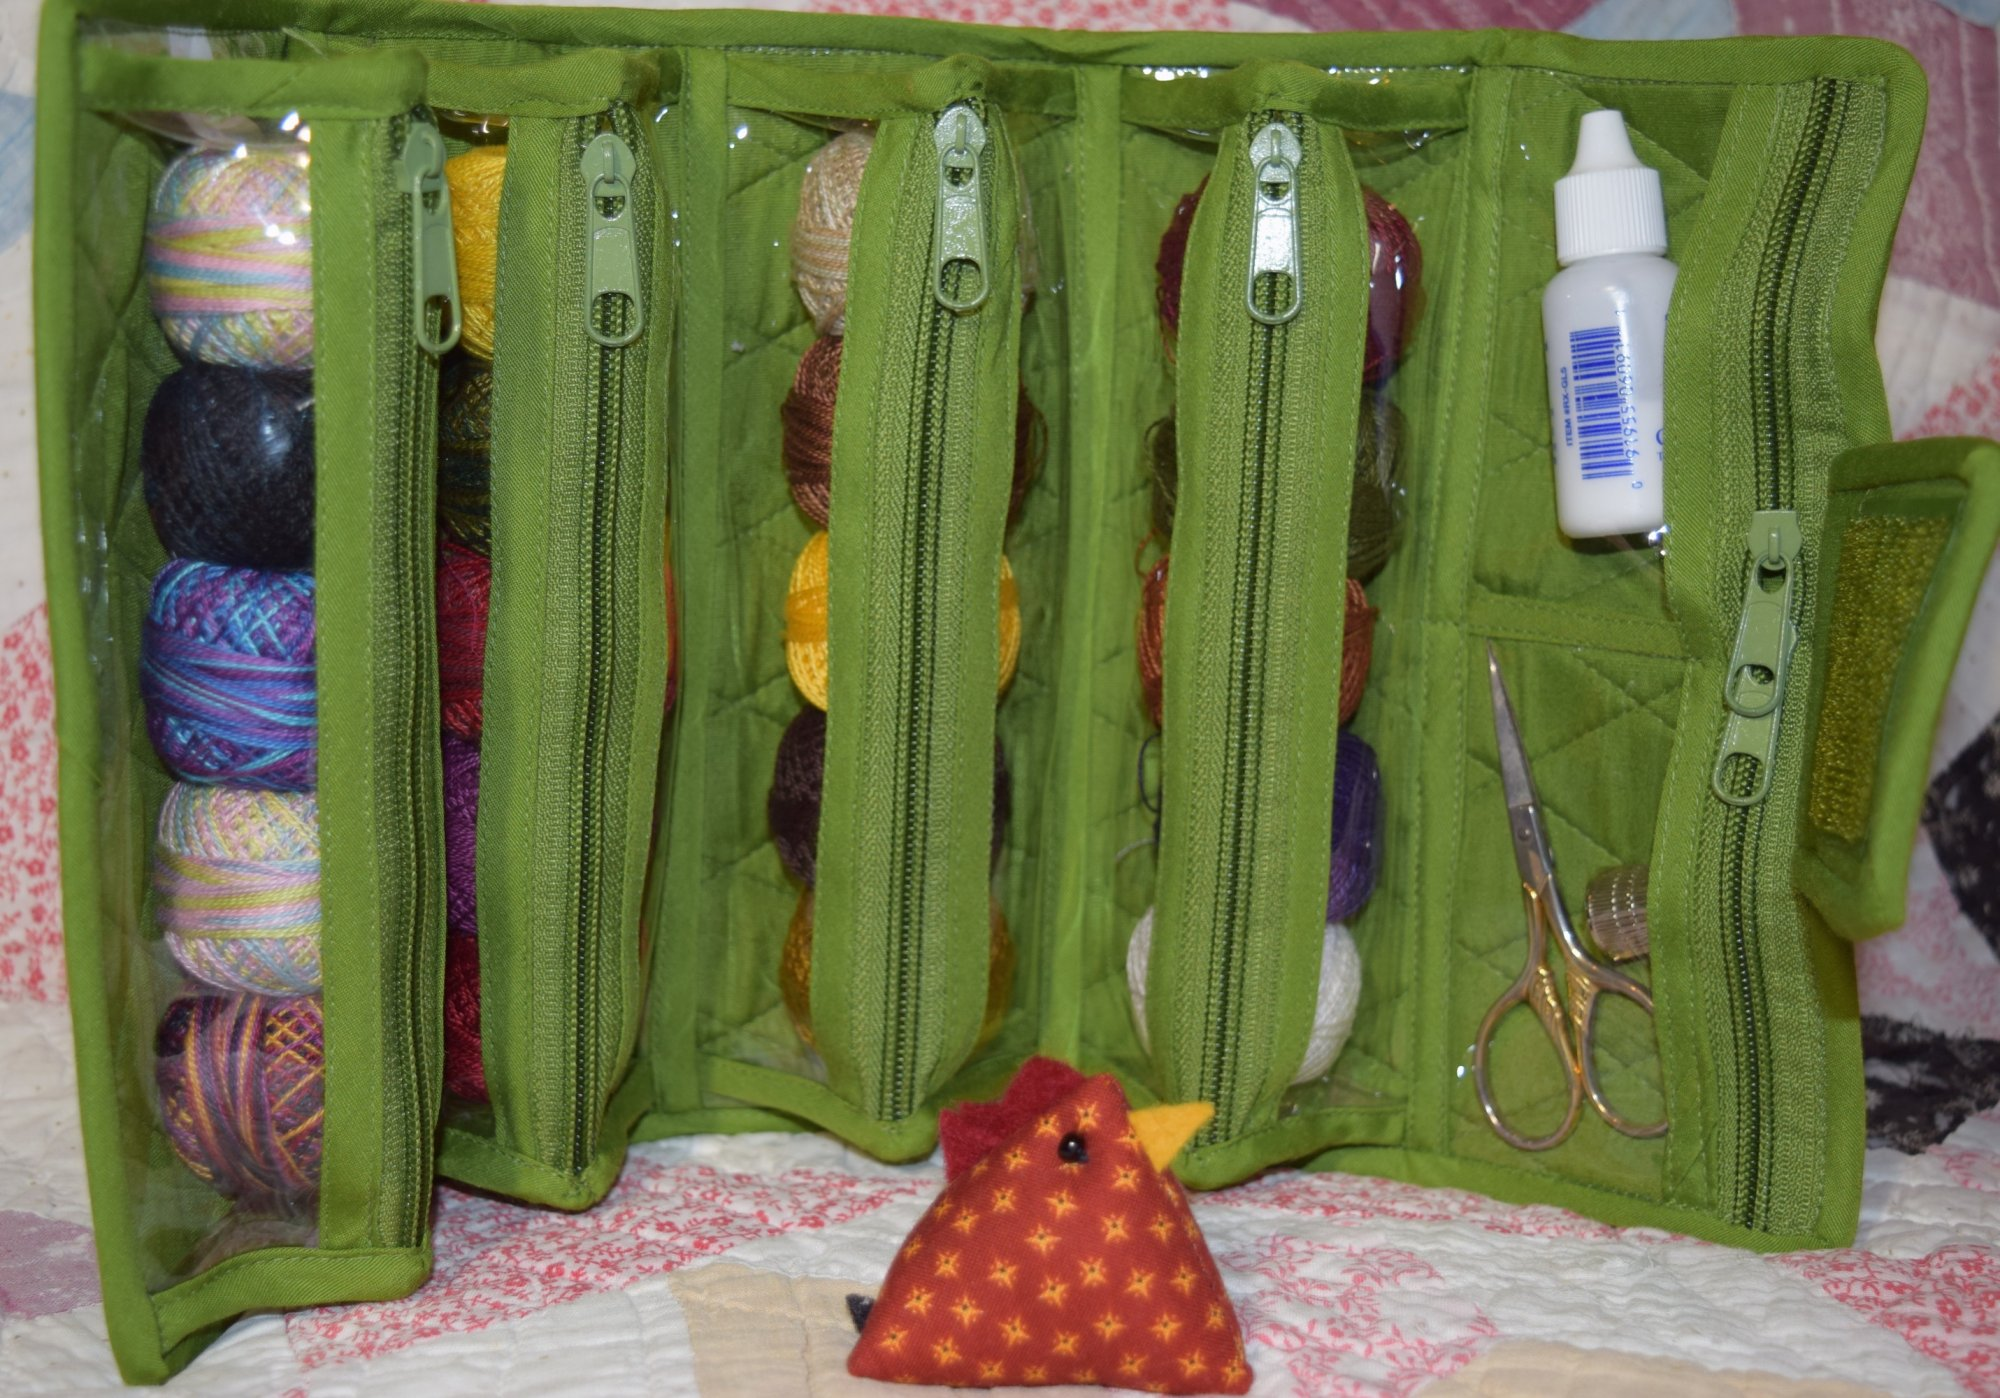 Small Pear Green Roll-Up Bags by Yazzii